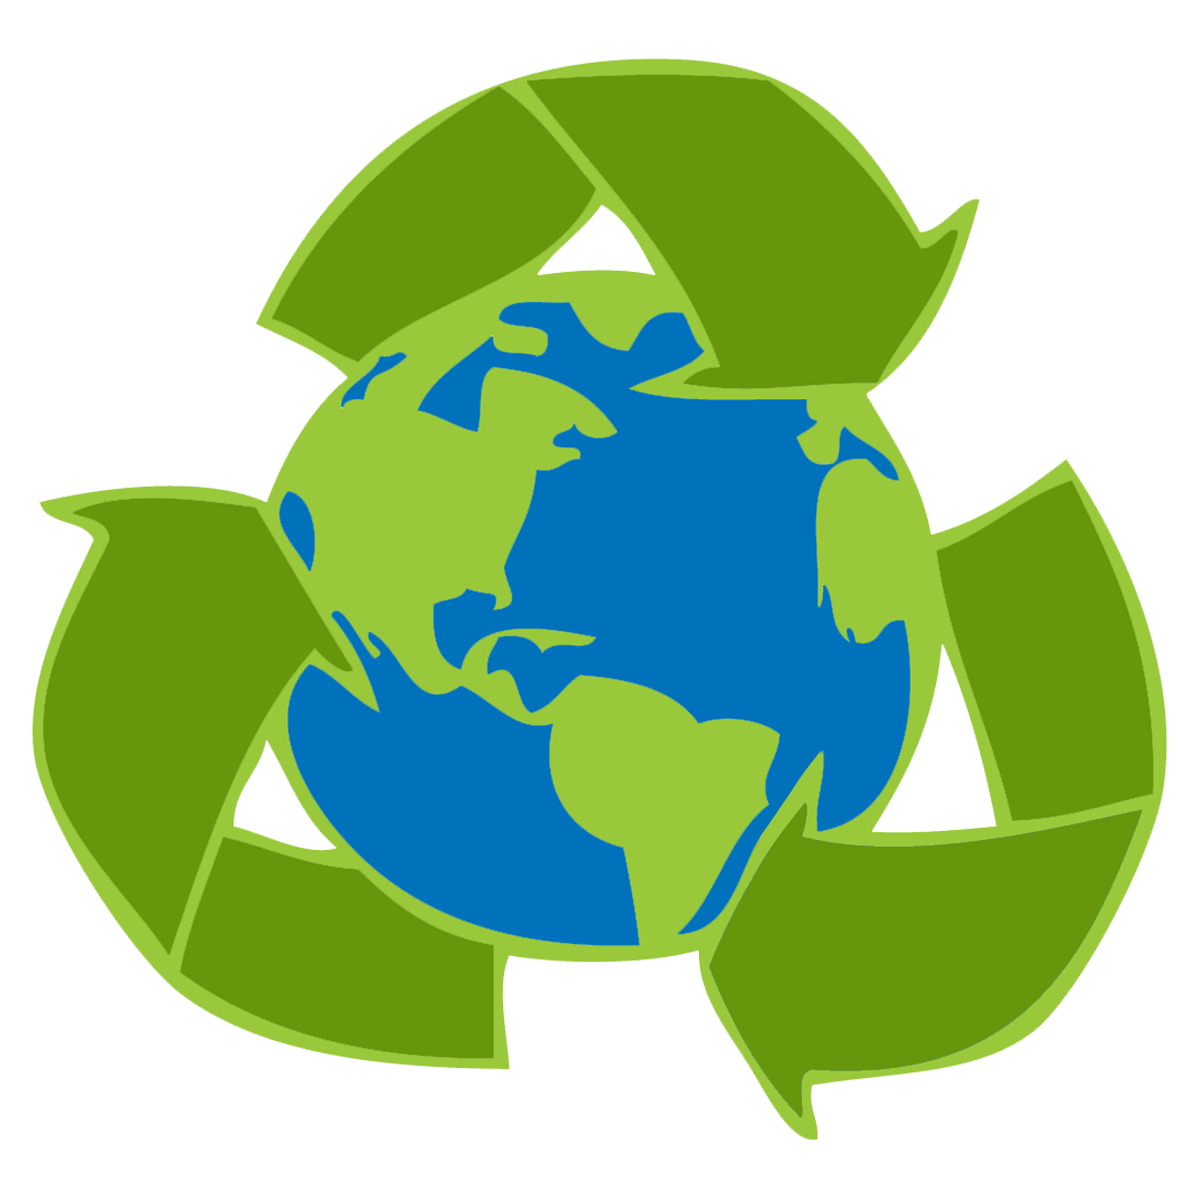 1200x1200 Environmental clipart eco green graphics earth day 2